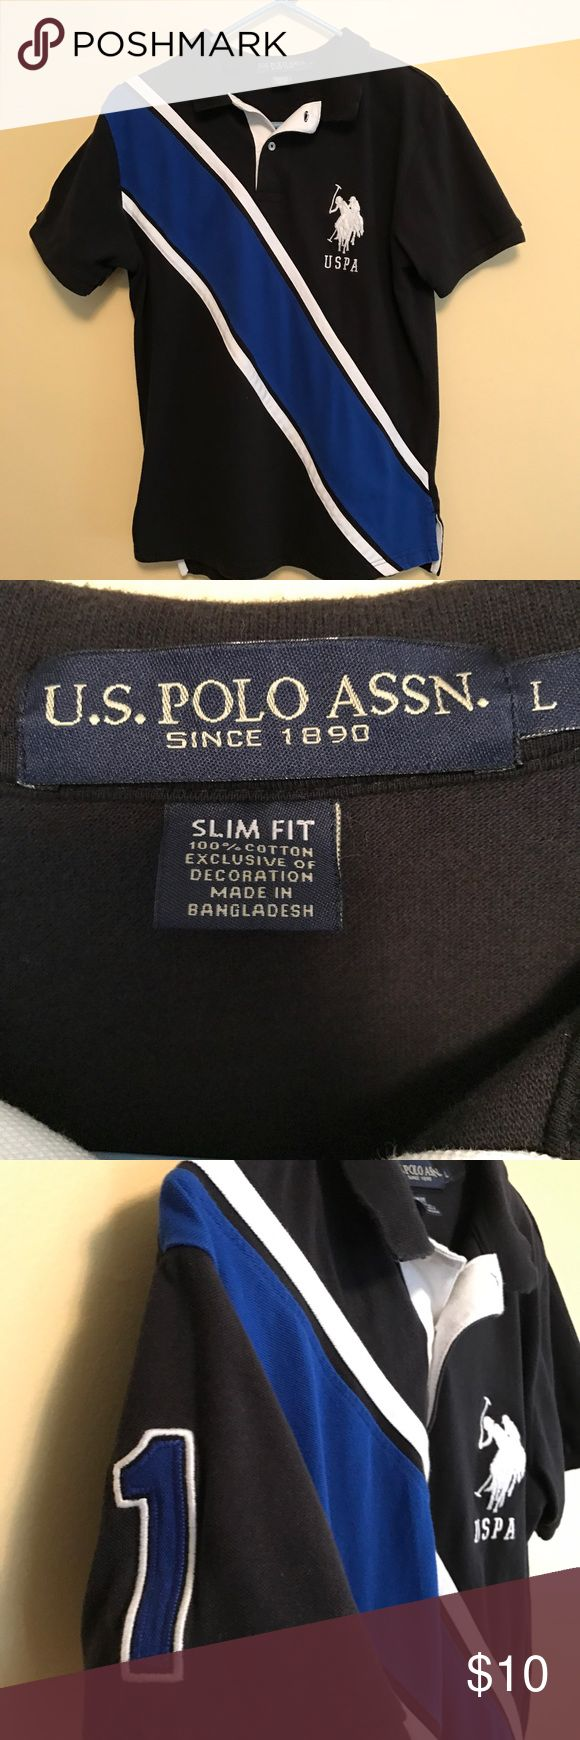 Mens U.S. Polo shirt Men's US Polo Association shirt size large. Slim fit 100% cotton and machine washable gently left condition. U.S. Polo Assn. Shirts Polos